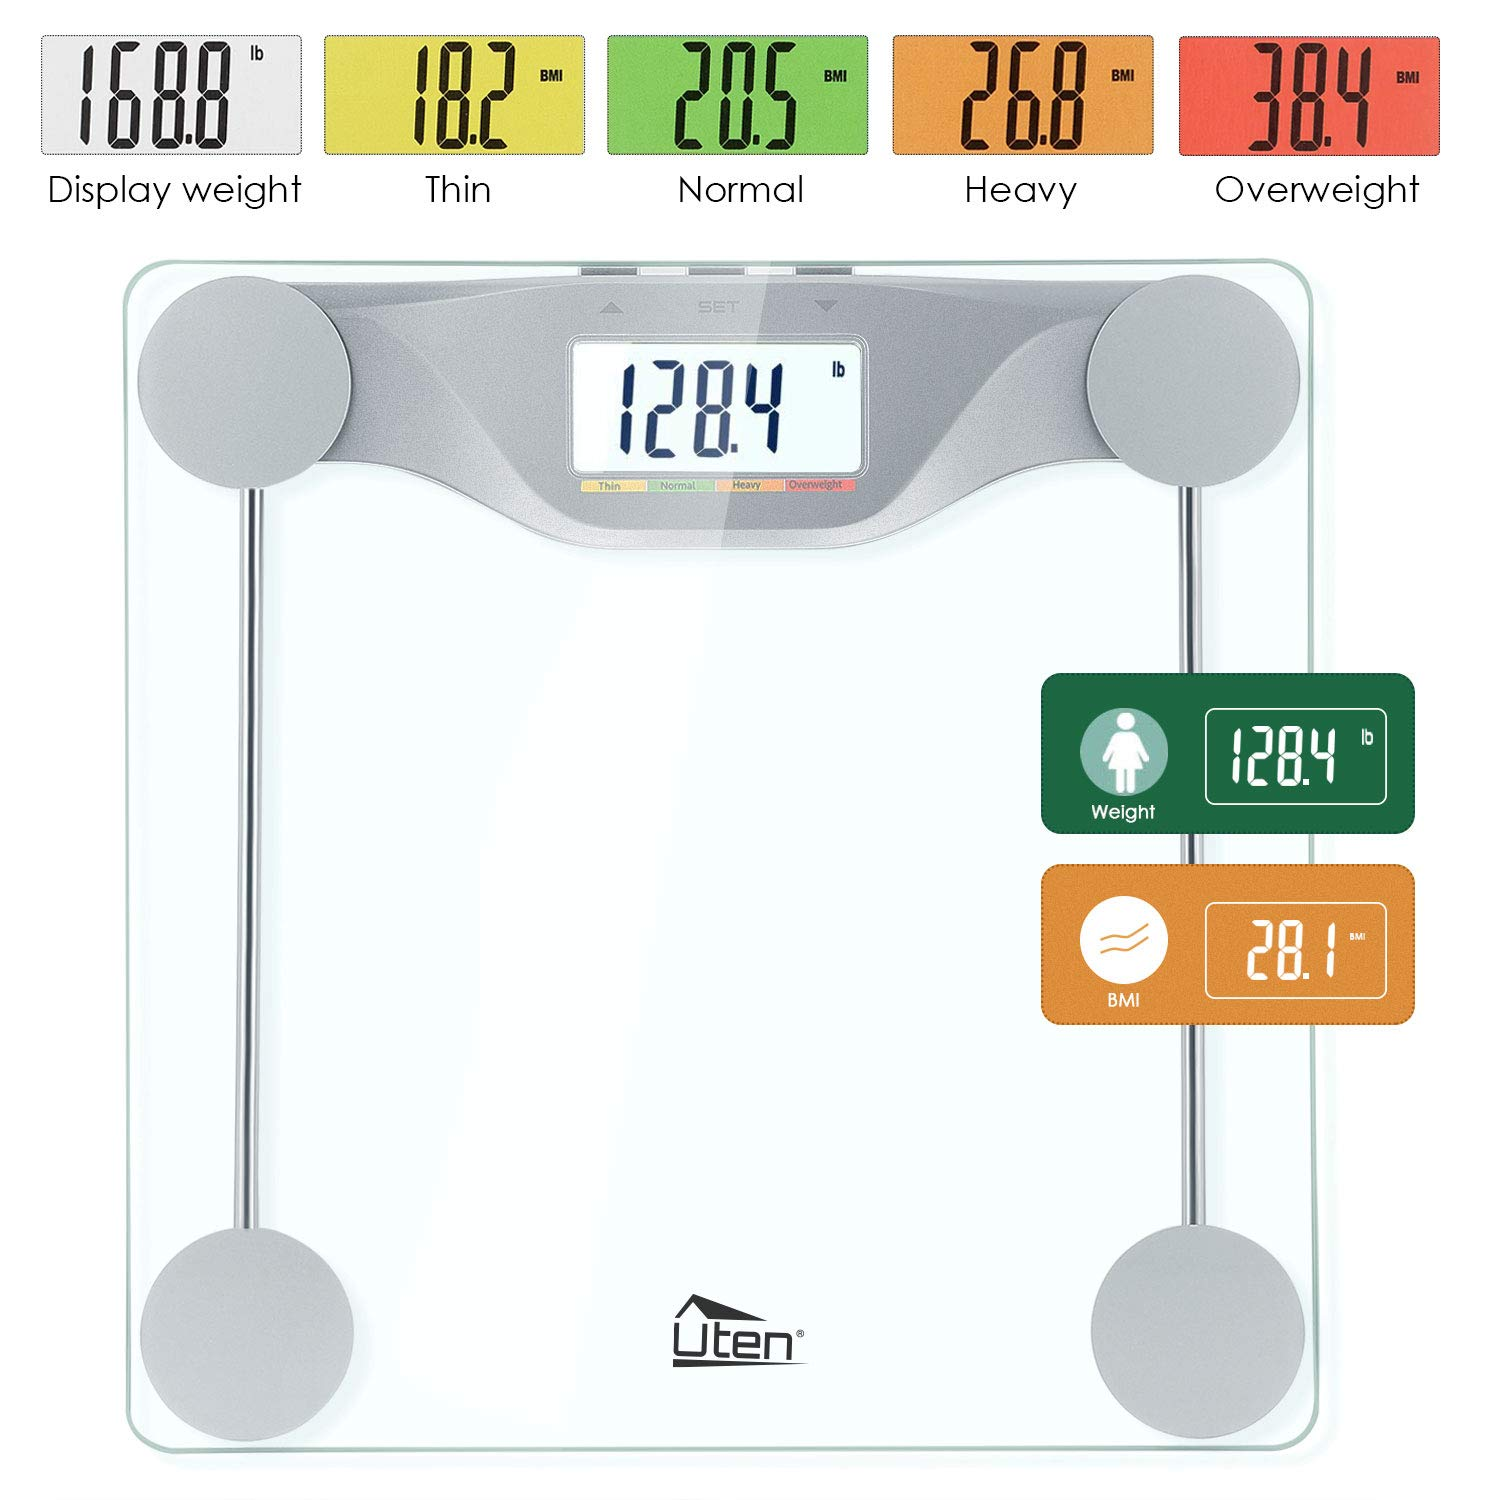 Uten Digital Body Fat Bathroom Scale with BMI High-Precision Smart Weight Scales with Large Backlight 5 Colors LCD Display, Step-On Technology, Round Corner Design and 6MM Glass 400lb Capacity by Uten